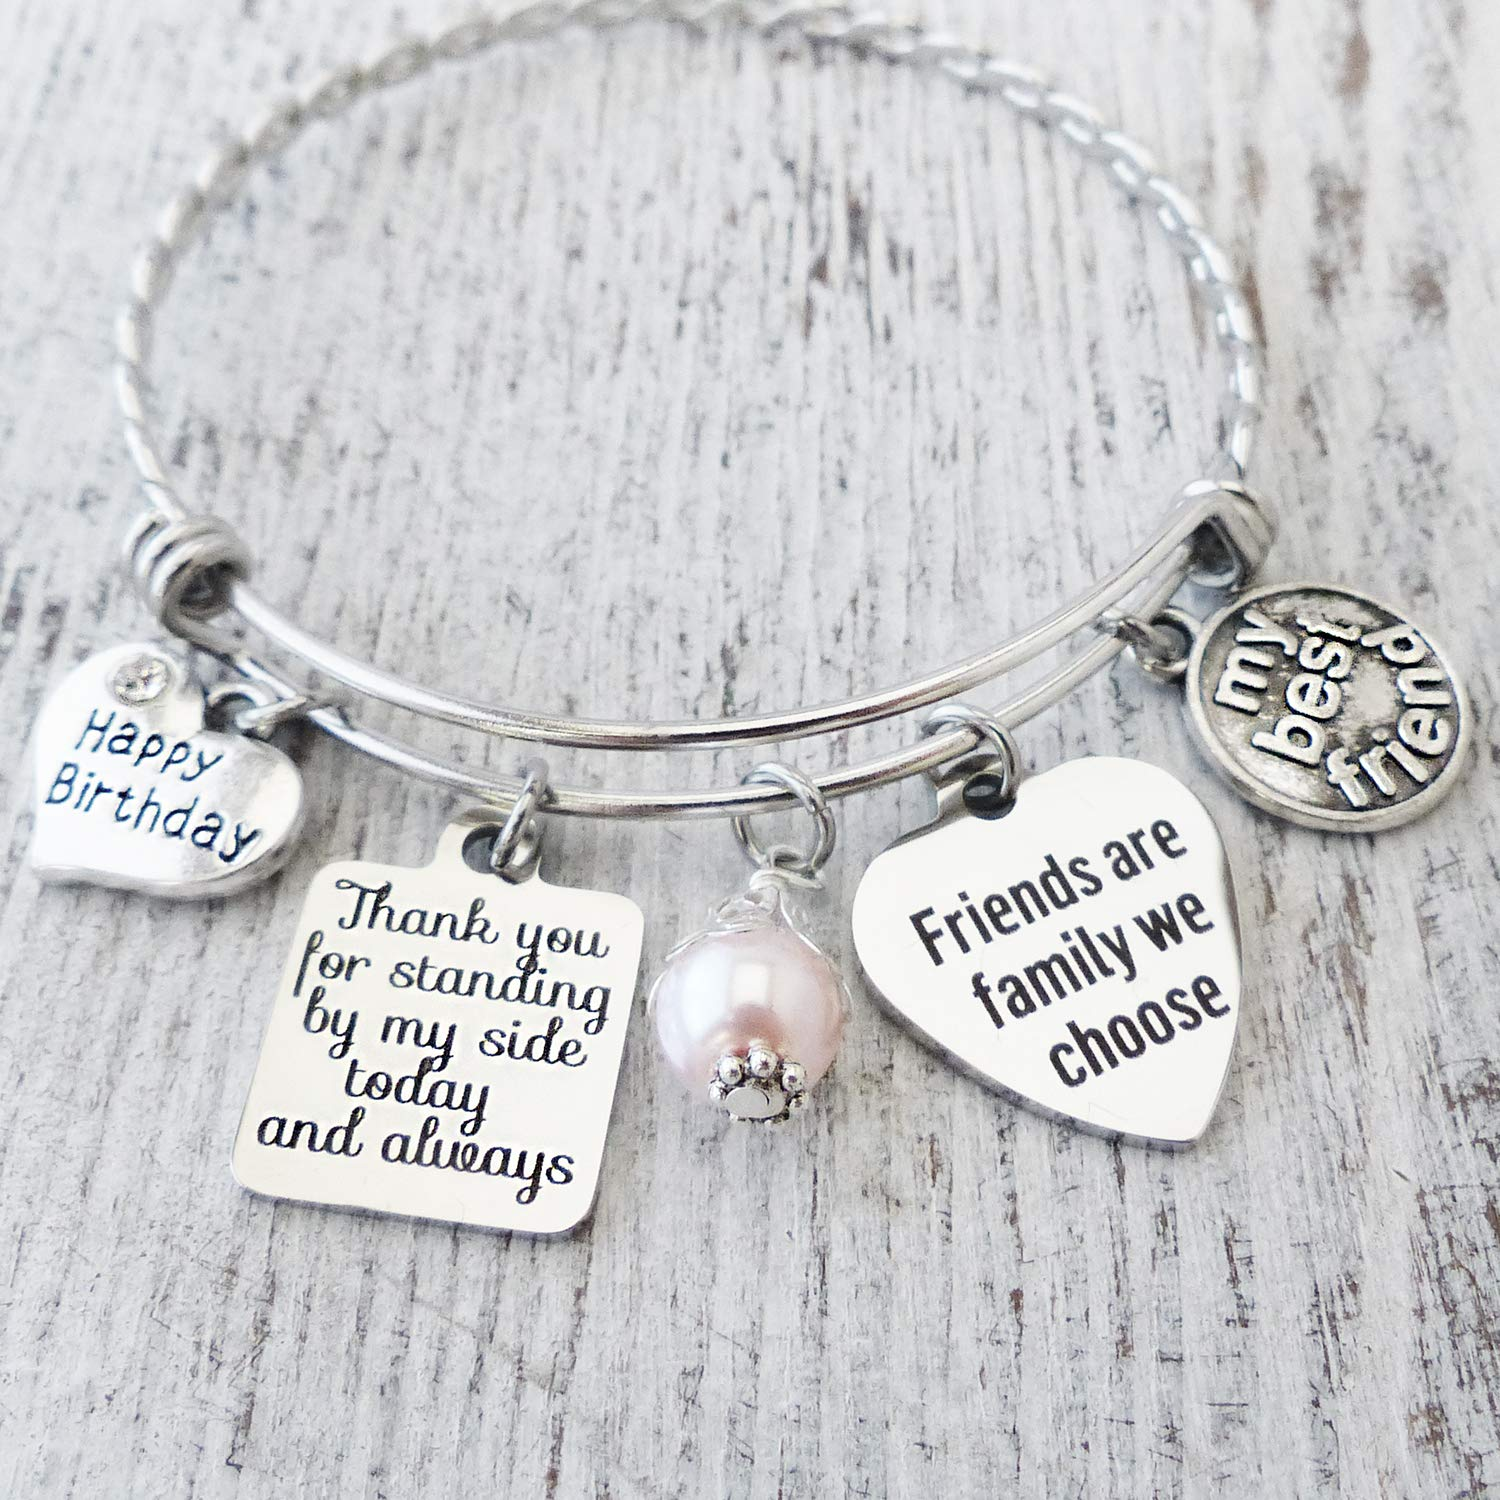 UNQJRY Bangle for Women Friendship Bracelets Inspirational Jewelry for Girls Bithday Gift